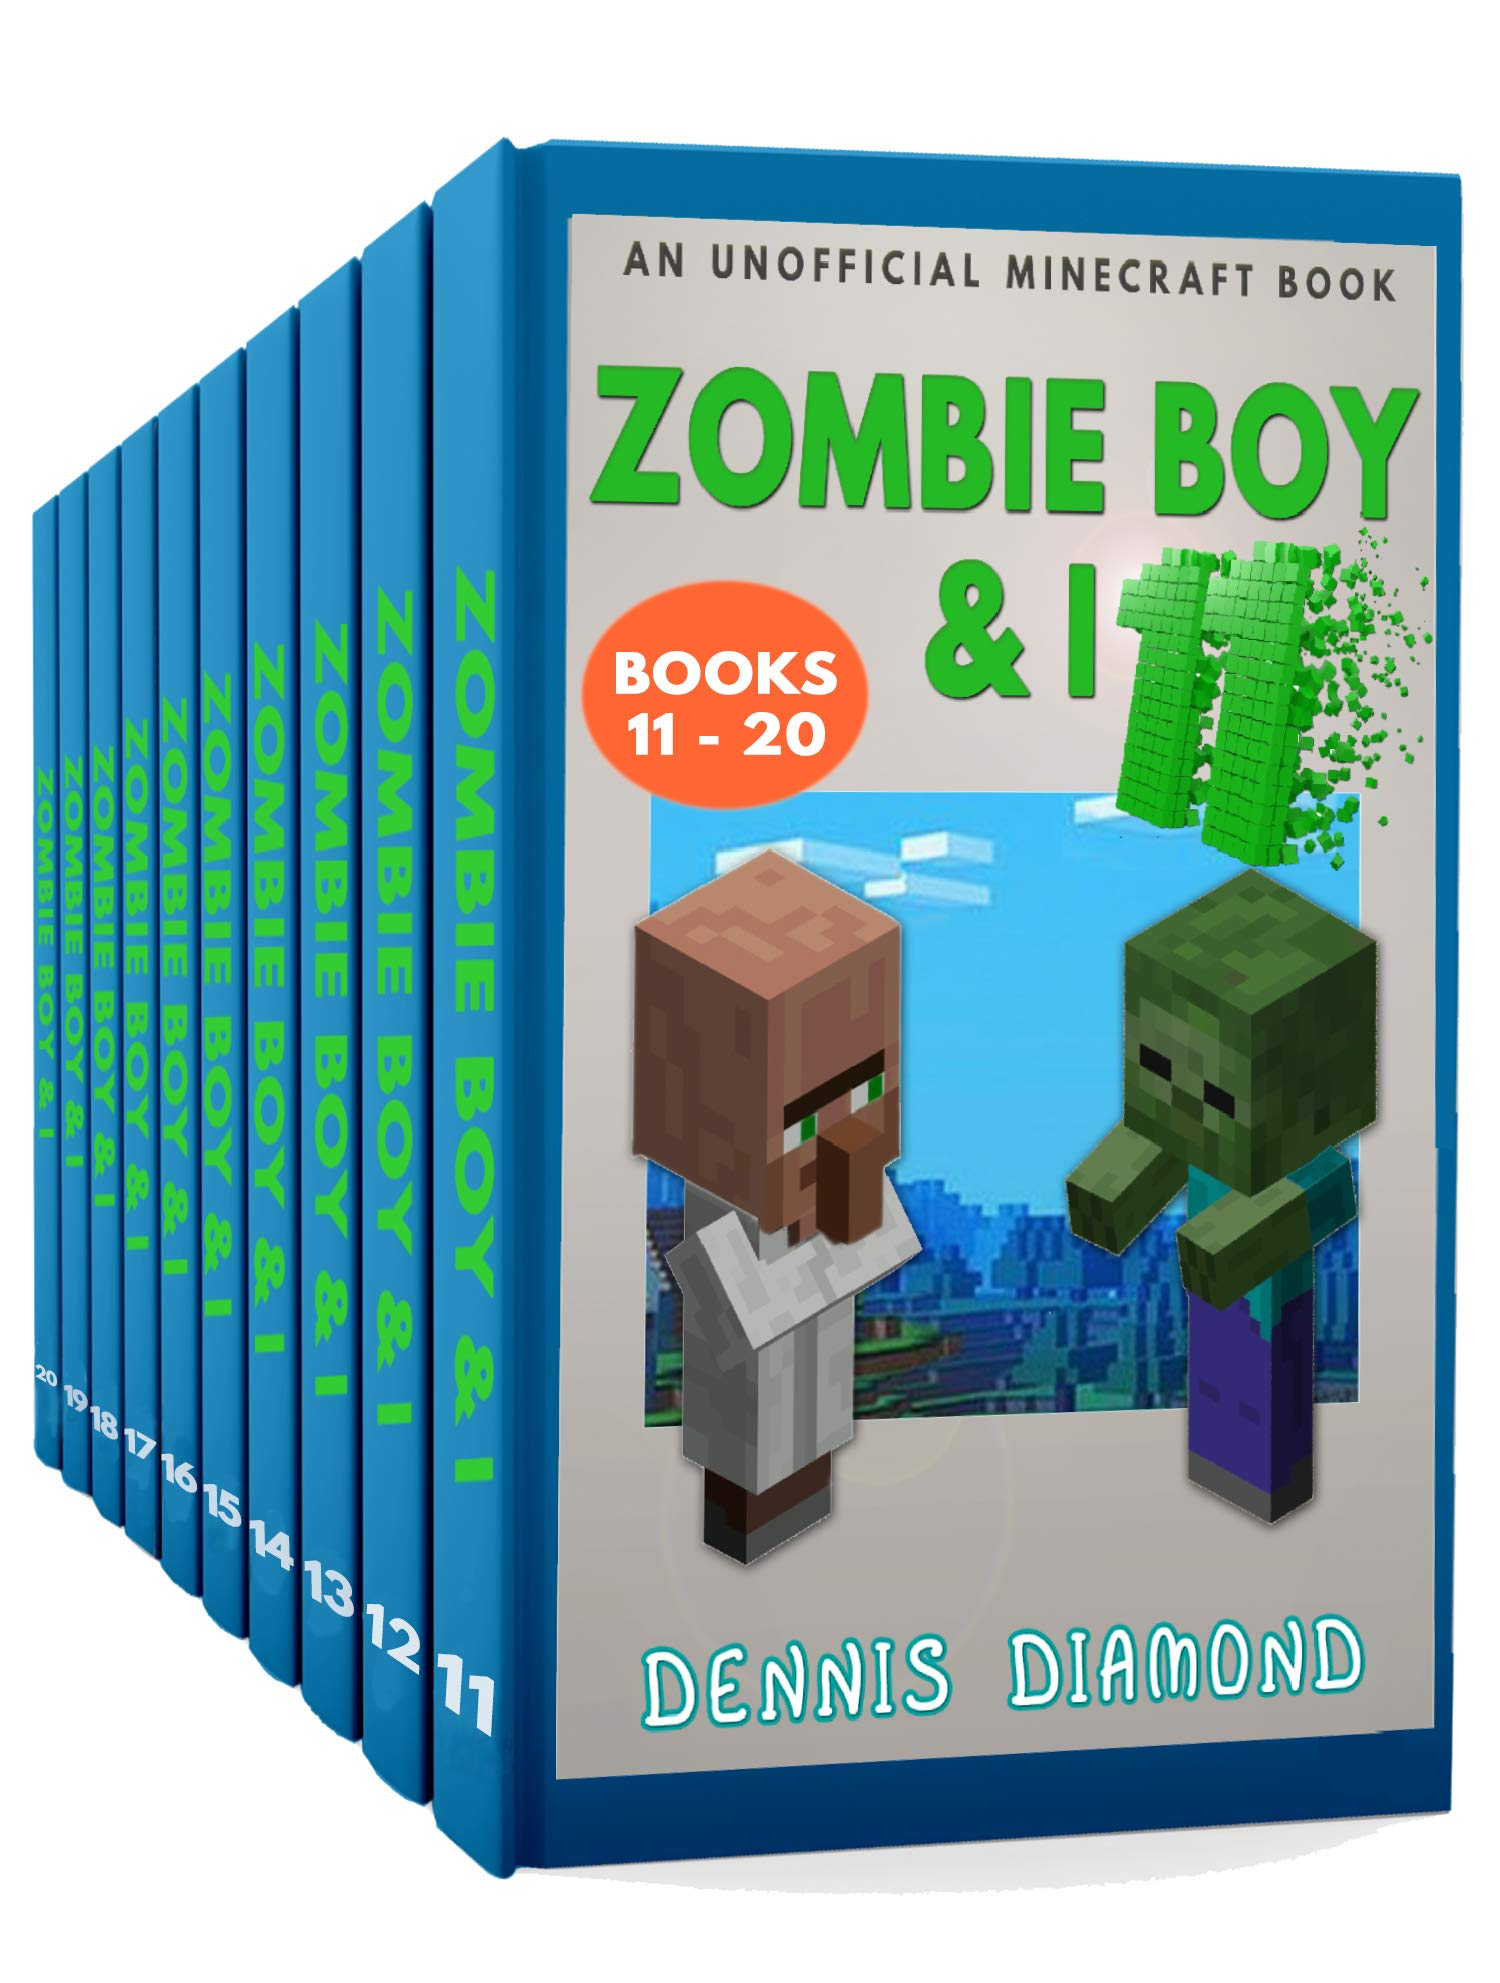 Zombie Boy & I, Books 11-20: A collection of unofficial Minecraft adventure books